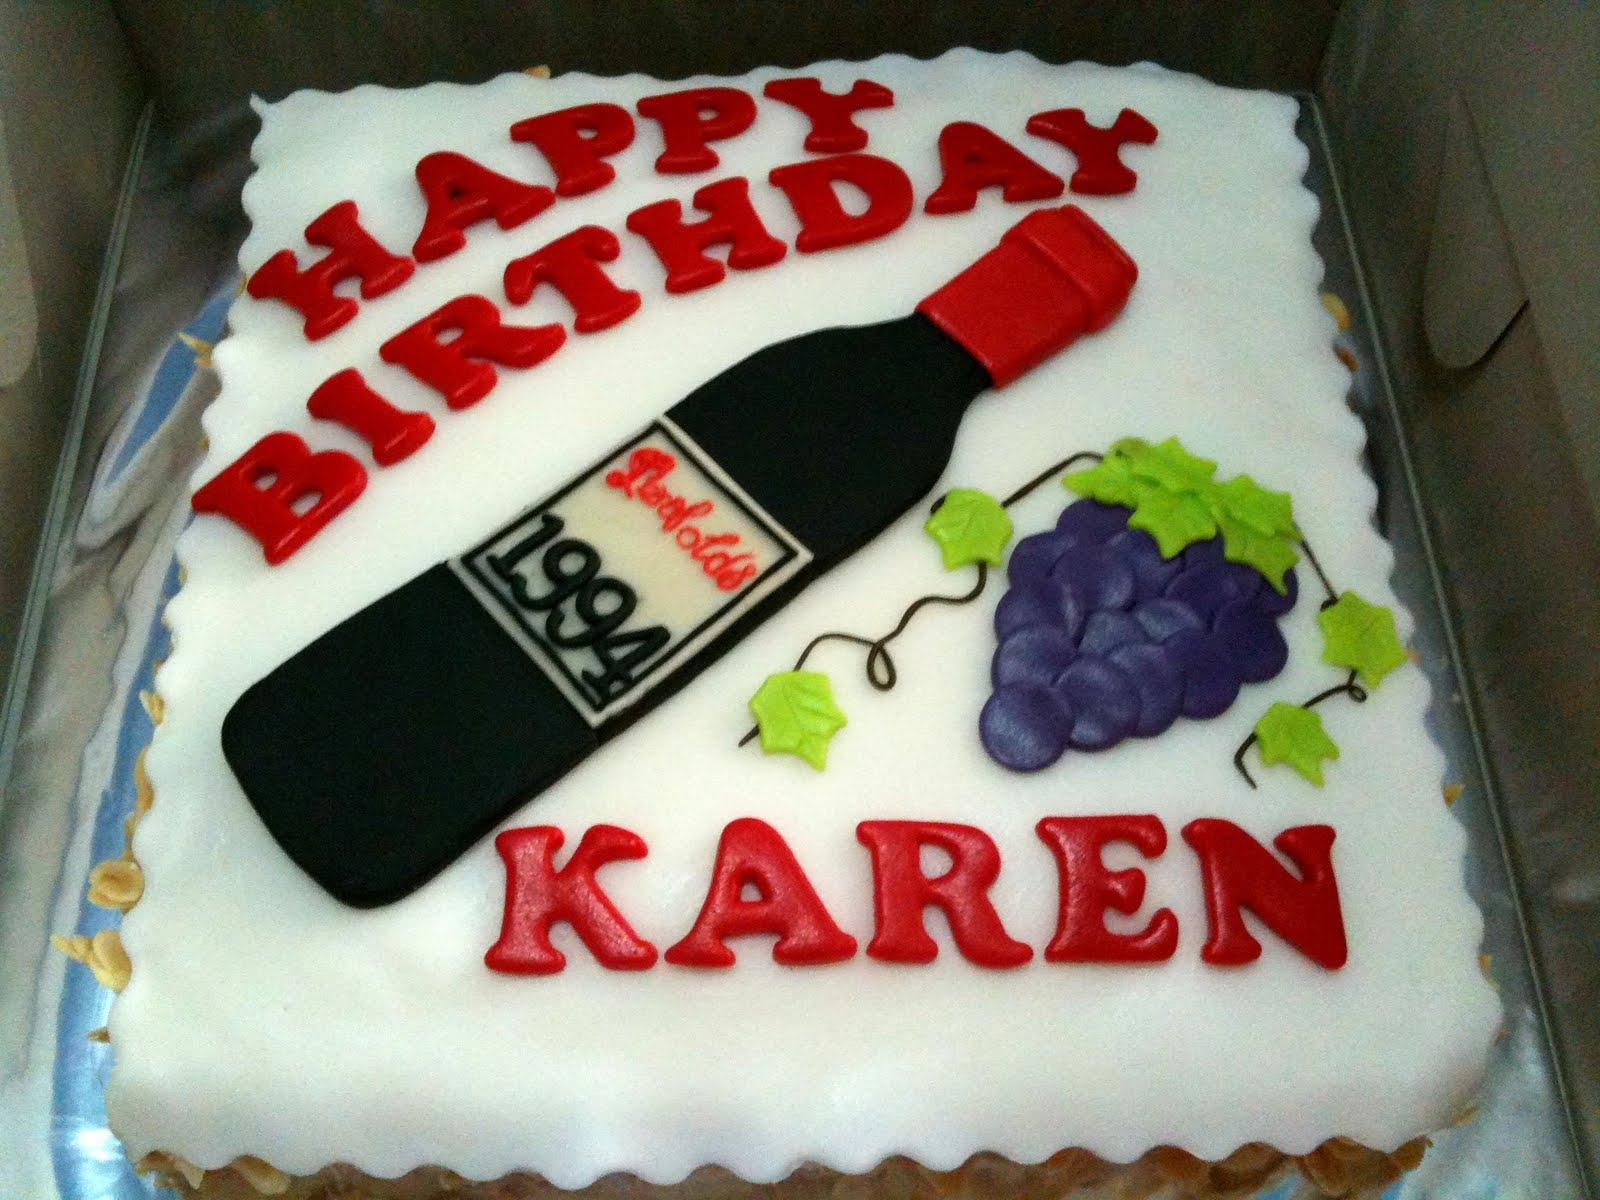 happy birthday karen cake images